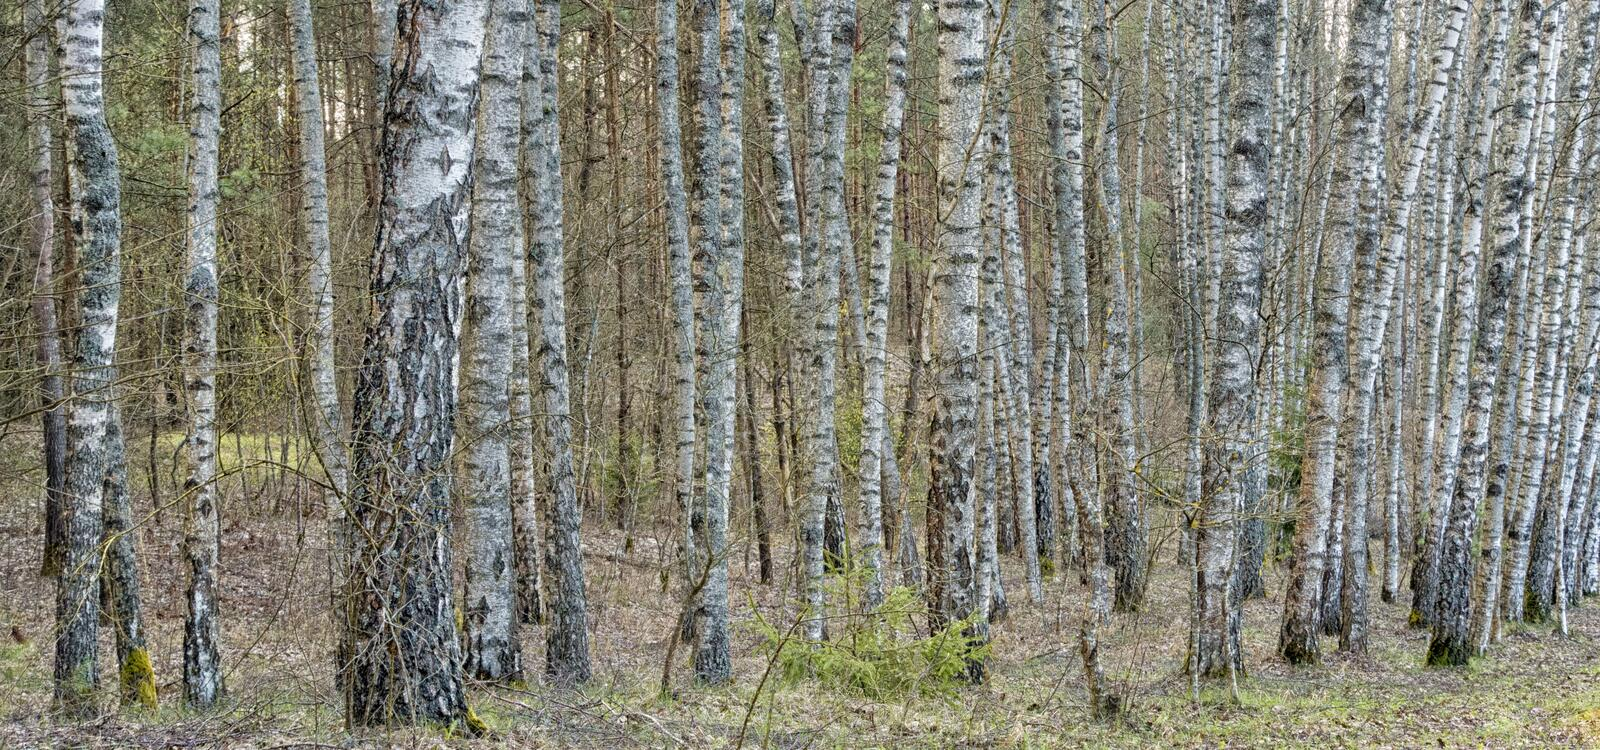 Birch tree forest with black and white trunks. Day springtime grass leaves bushes branches royalty free stock photo